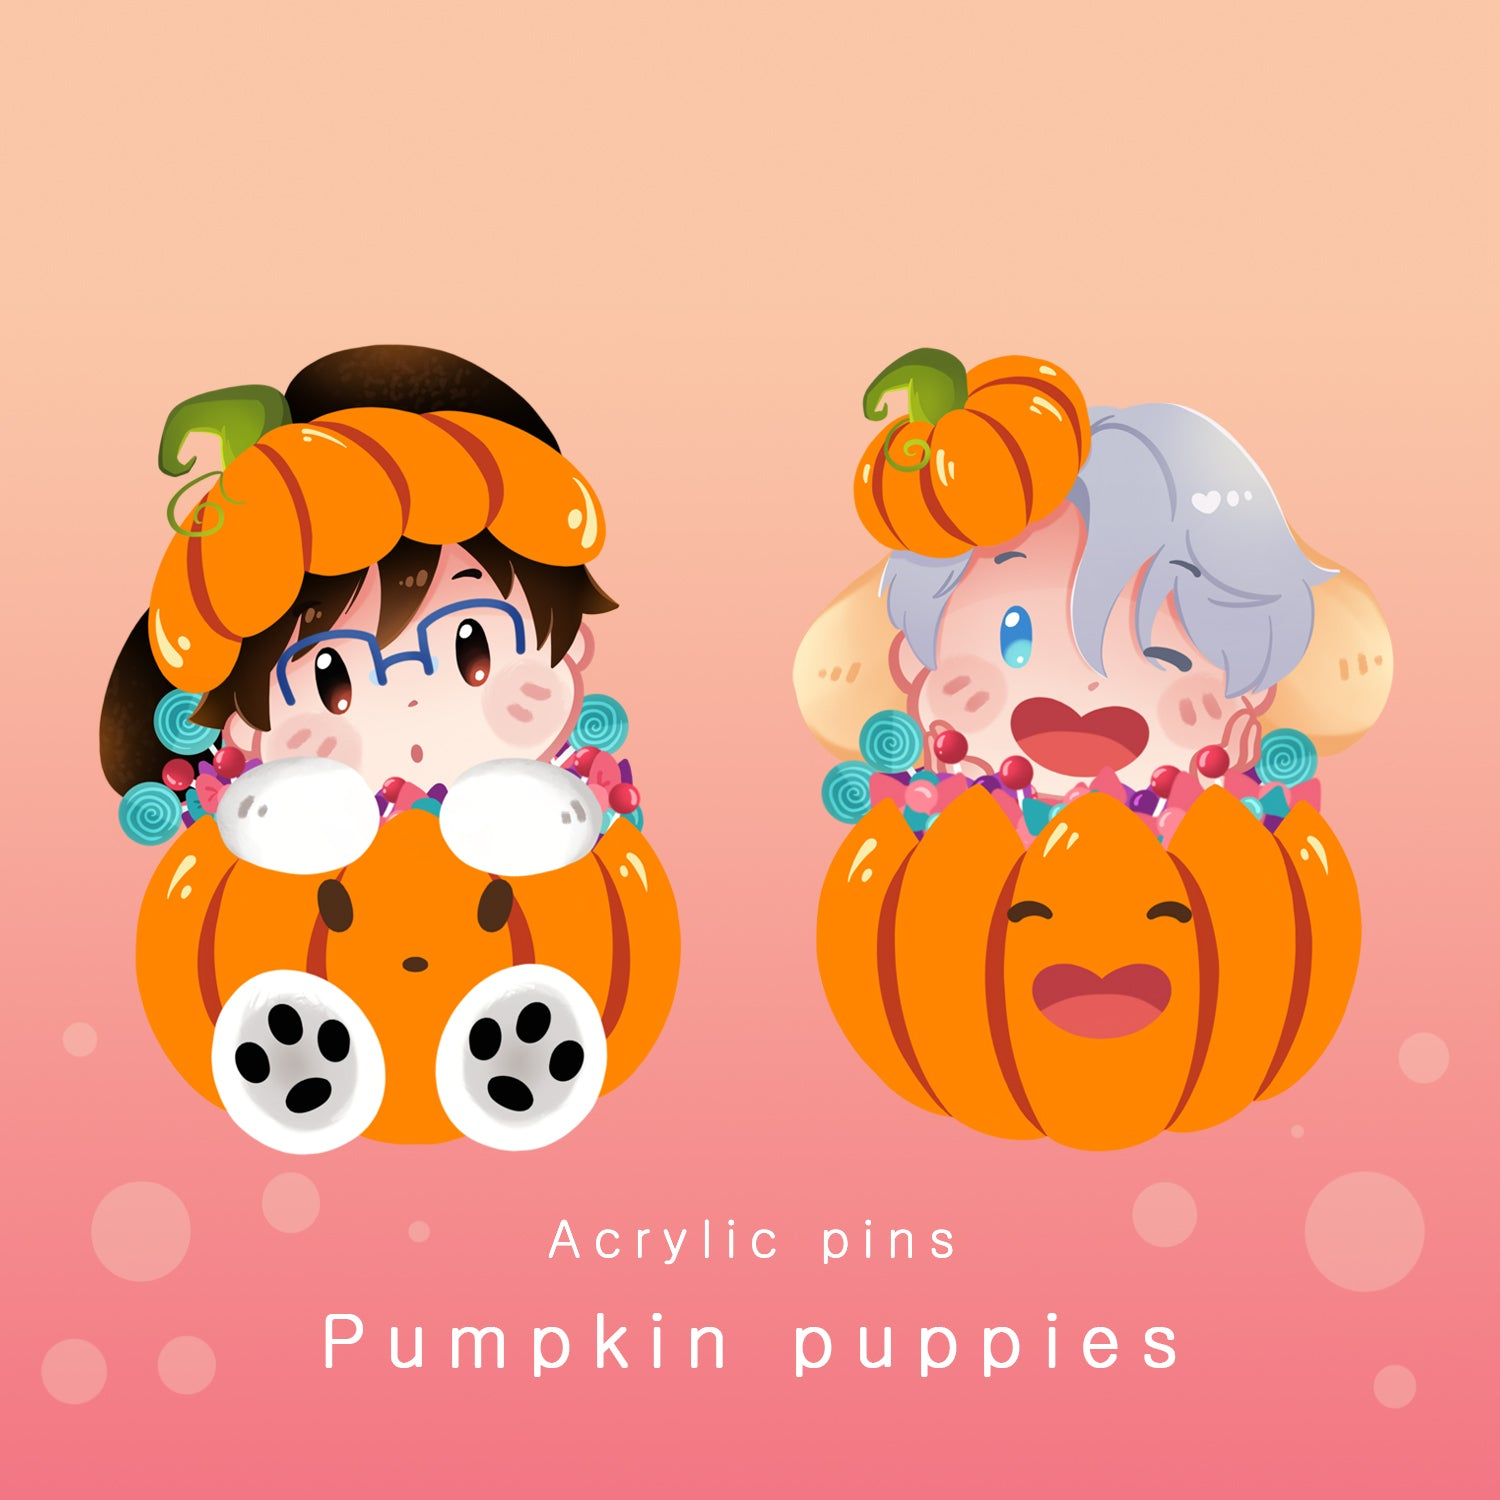 [Yuri!!! on Ice] Pumpkin puppies - acrylic pins